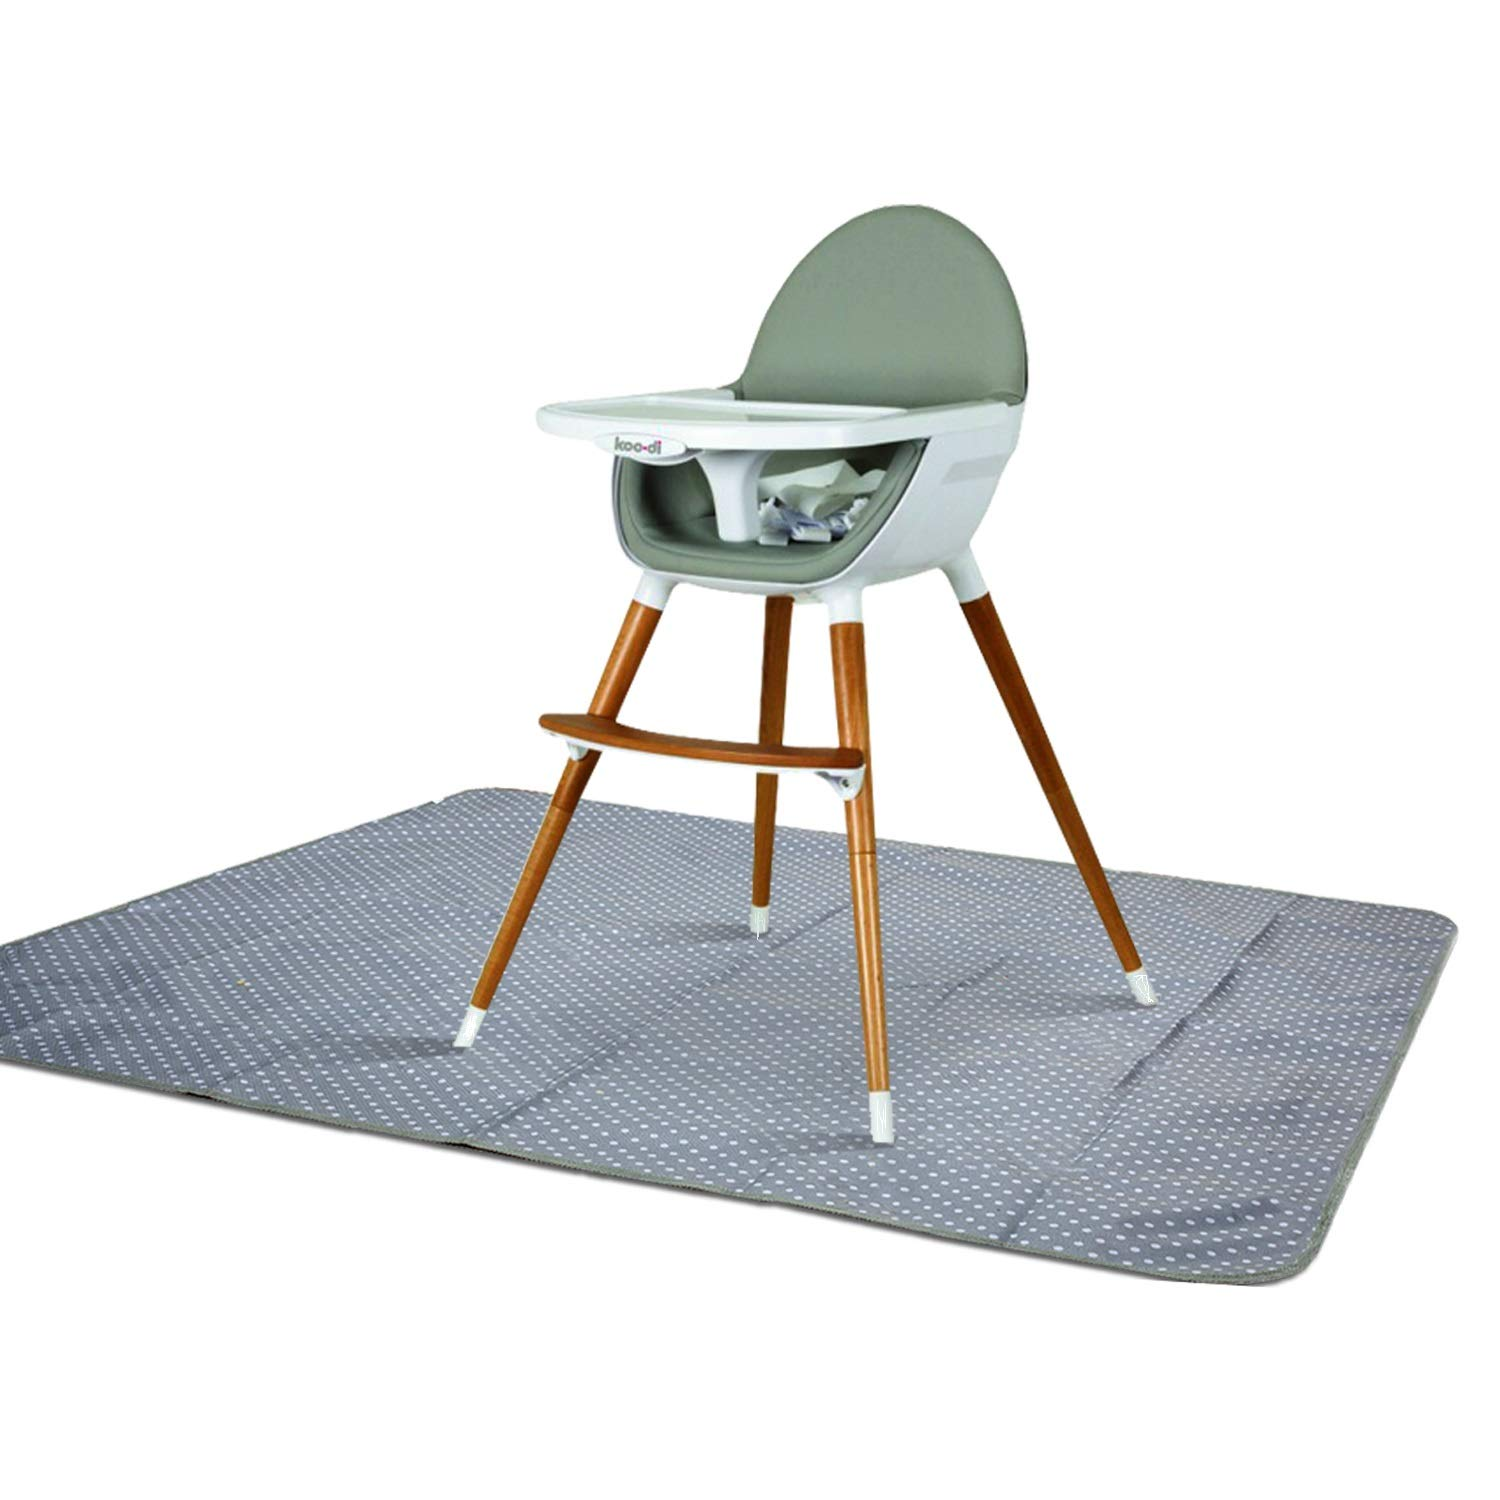 Splat Mat for Under High Chair - Splash Mat | Washable & Water Resistant | Non-Toxic | Multiple Uses | Easy to Wipe | Quick Drying | Large 42 inch Size | Comes w/Carrying case for Floor or Table